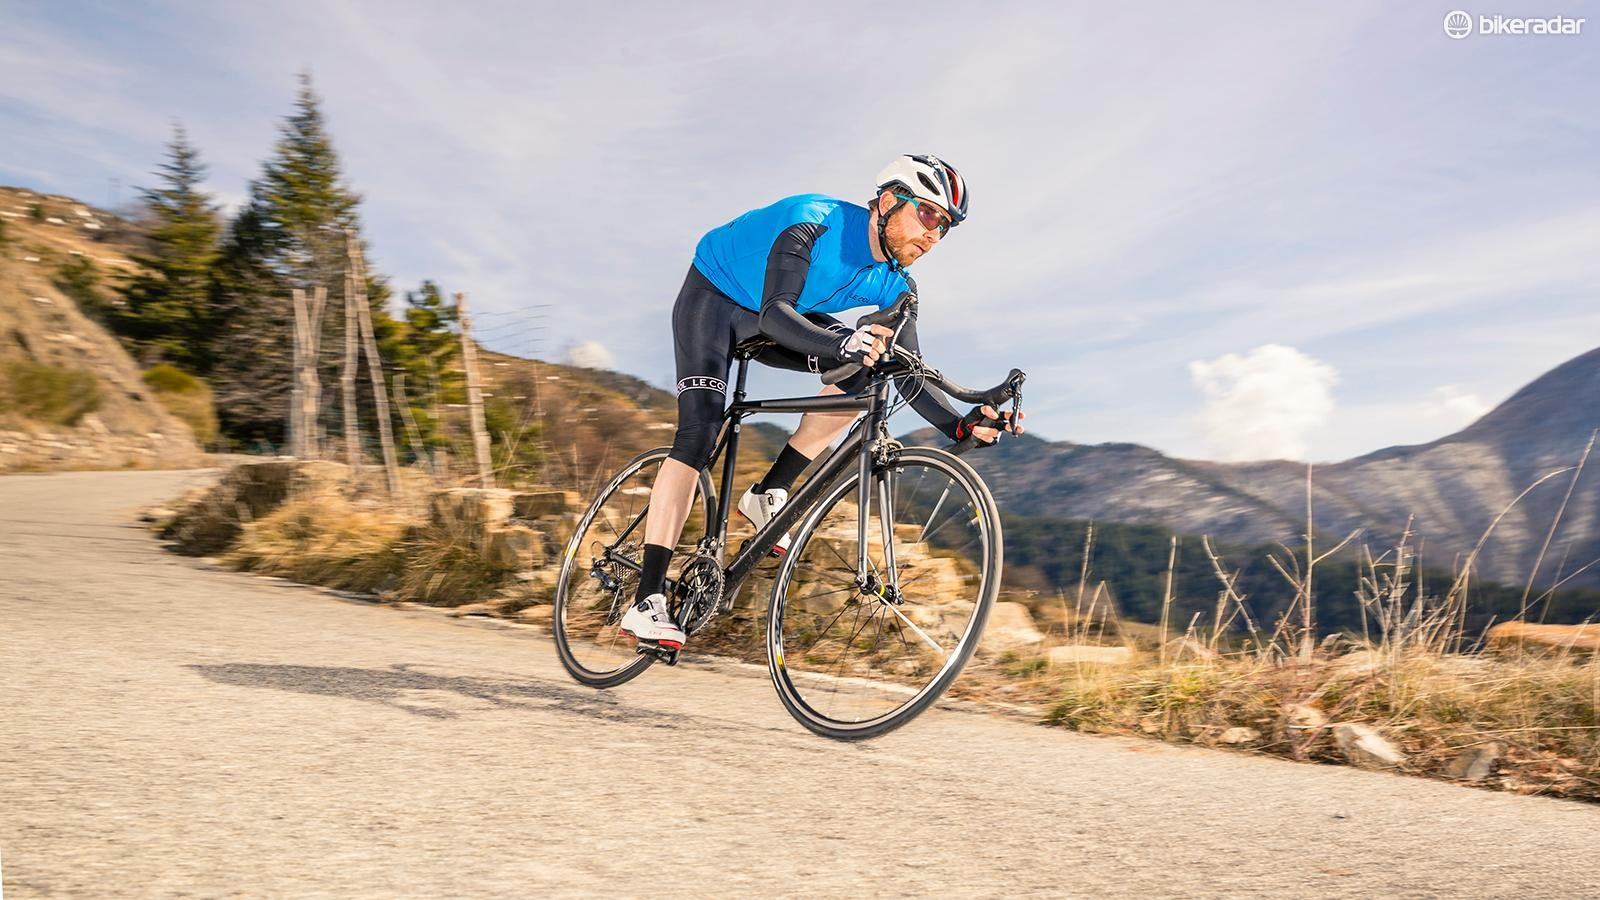 Cannondale CAAD12 Ultegra has a refined, highly tuned aluminium frame